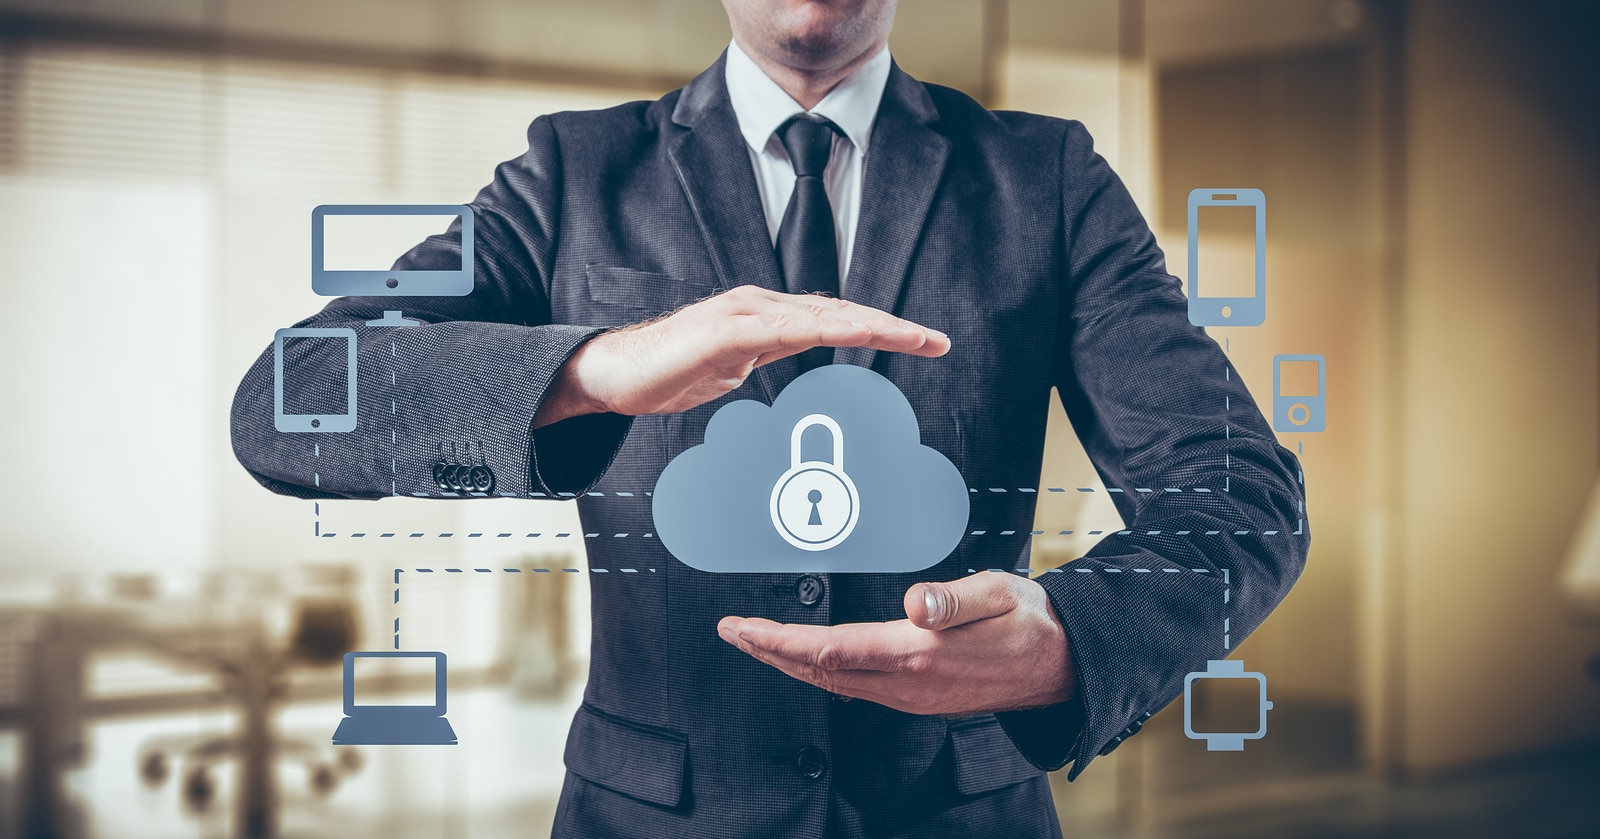 Security and Safety of Cloud Data - Protected cloud information data